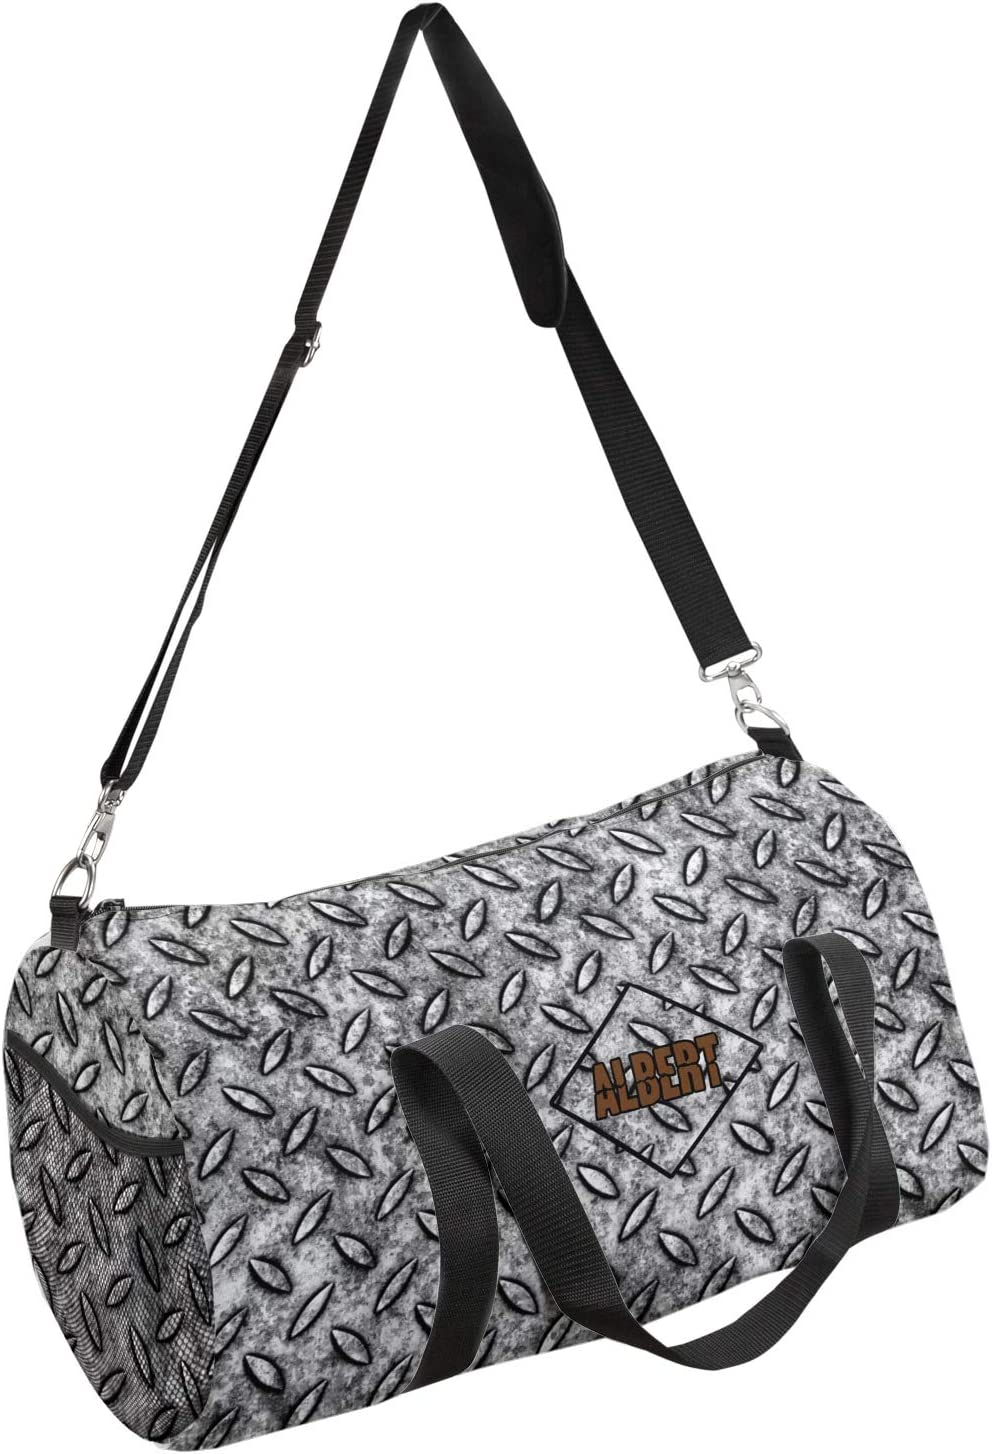 YouCustomizeIt Diamond Plate Duffel Bag Personalized